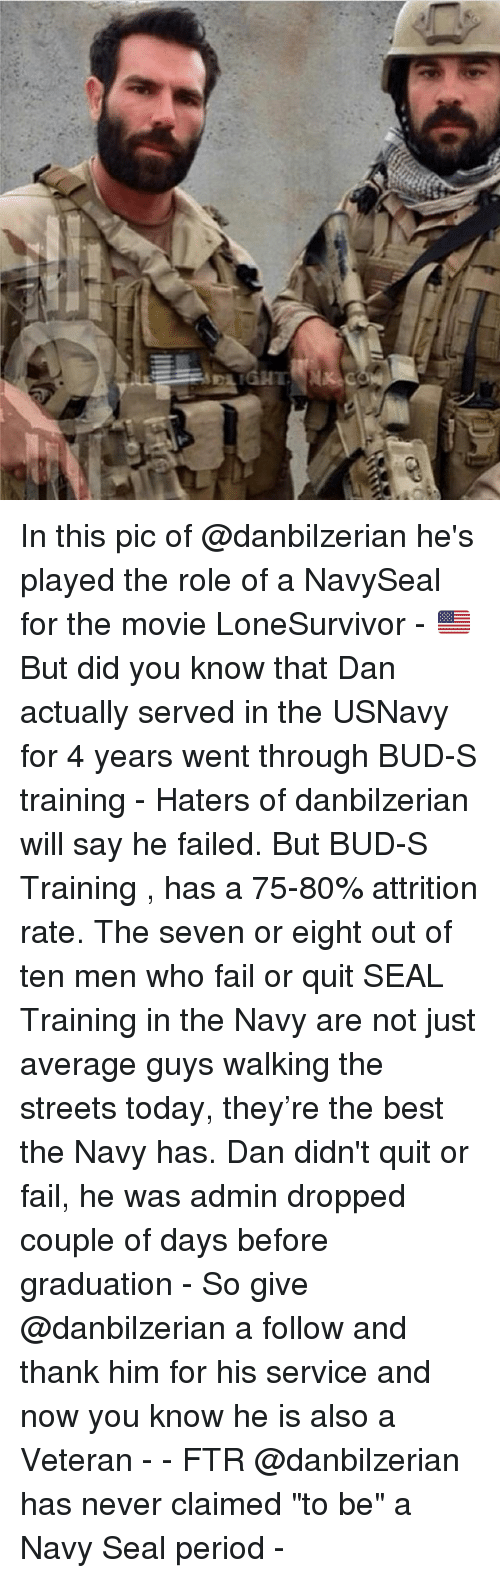 "Fail, Memes, and Period: C In this pic of @danbilzerian he's played the role of a NavySeal for the movie LoneSurvivor - 🇺🇸But did you know that Dan actually served in the USNavy for 4 years went through BUD-S training - Haters of danbilzerian will say he failed. But BUD-S Training , has a 75-80% attrition rate. The seven or eight out of ten men who fail or quit SEAL Training in the Navy are not just average guys walking the streets today, they're the best the Navy has. Dan didn't quit or fail, he was admin dropped couple of days before graduation - So give @danbilzerian a follow and thank him for his service and now you know he is also a Veteran - - FTR @danbilzerian has never claimed ""to be"" a Navy Seal period -"